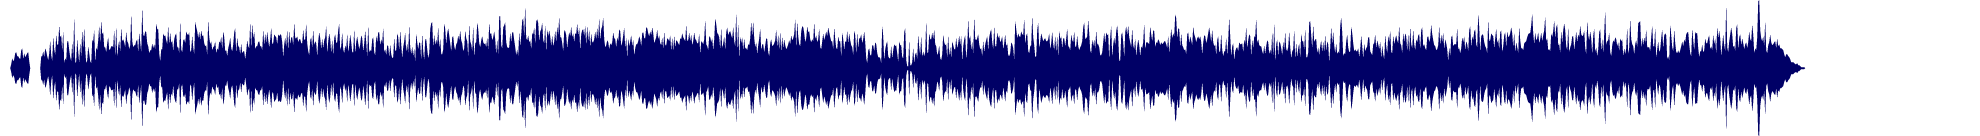 waveform of track #66951